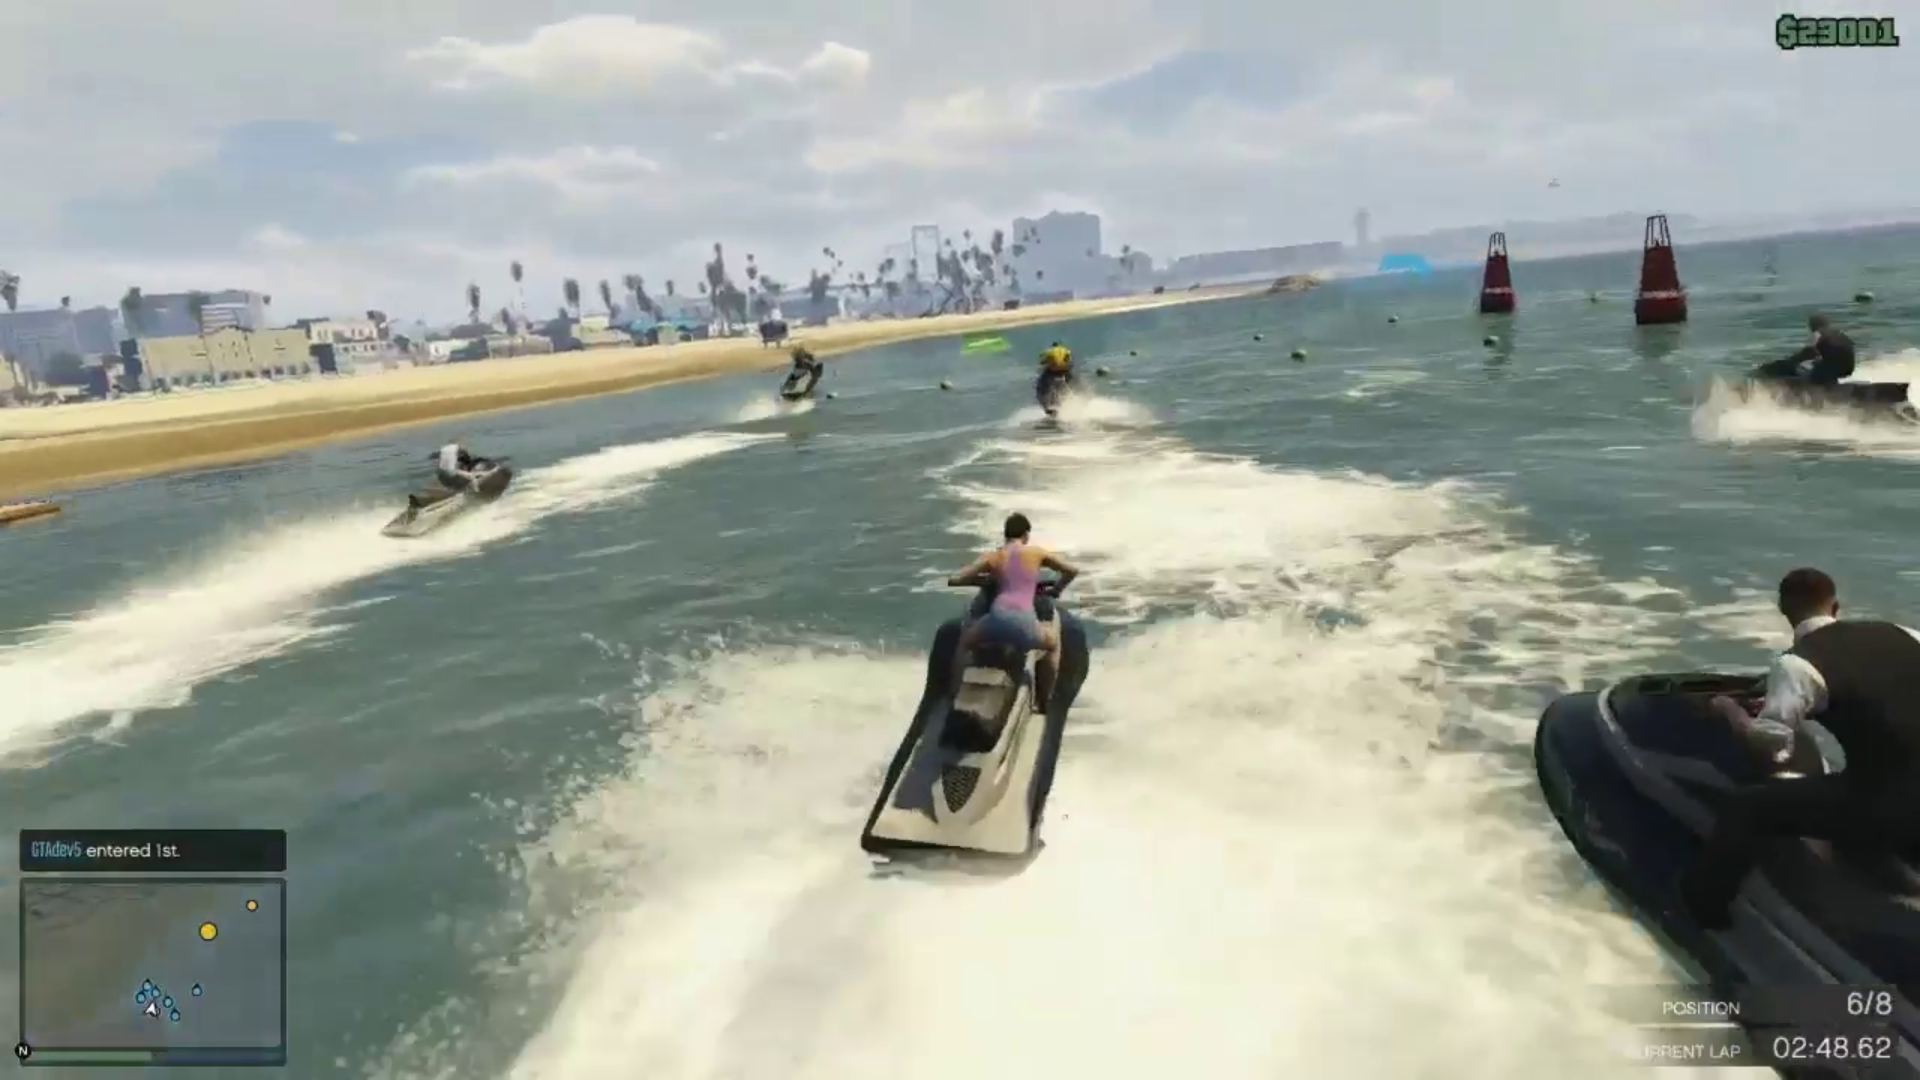 GTA V Gameplay Videos, Pictures, Map Leaked - Shows Airplane